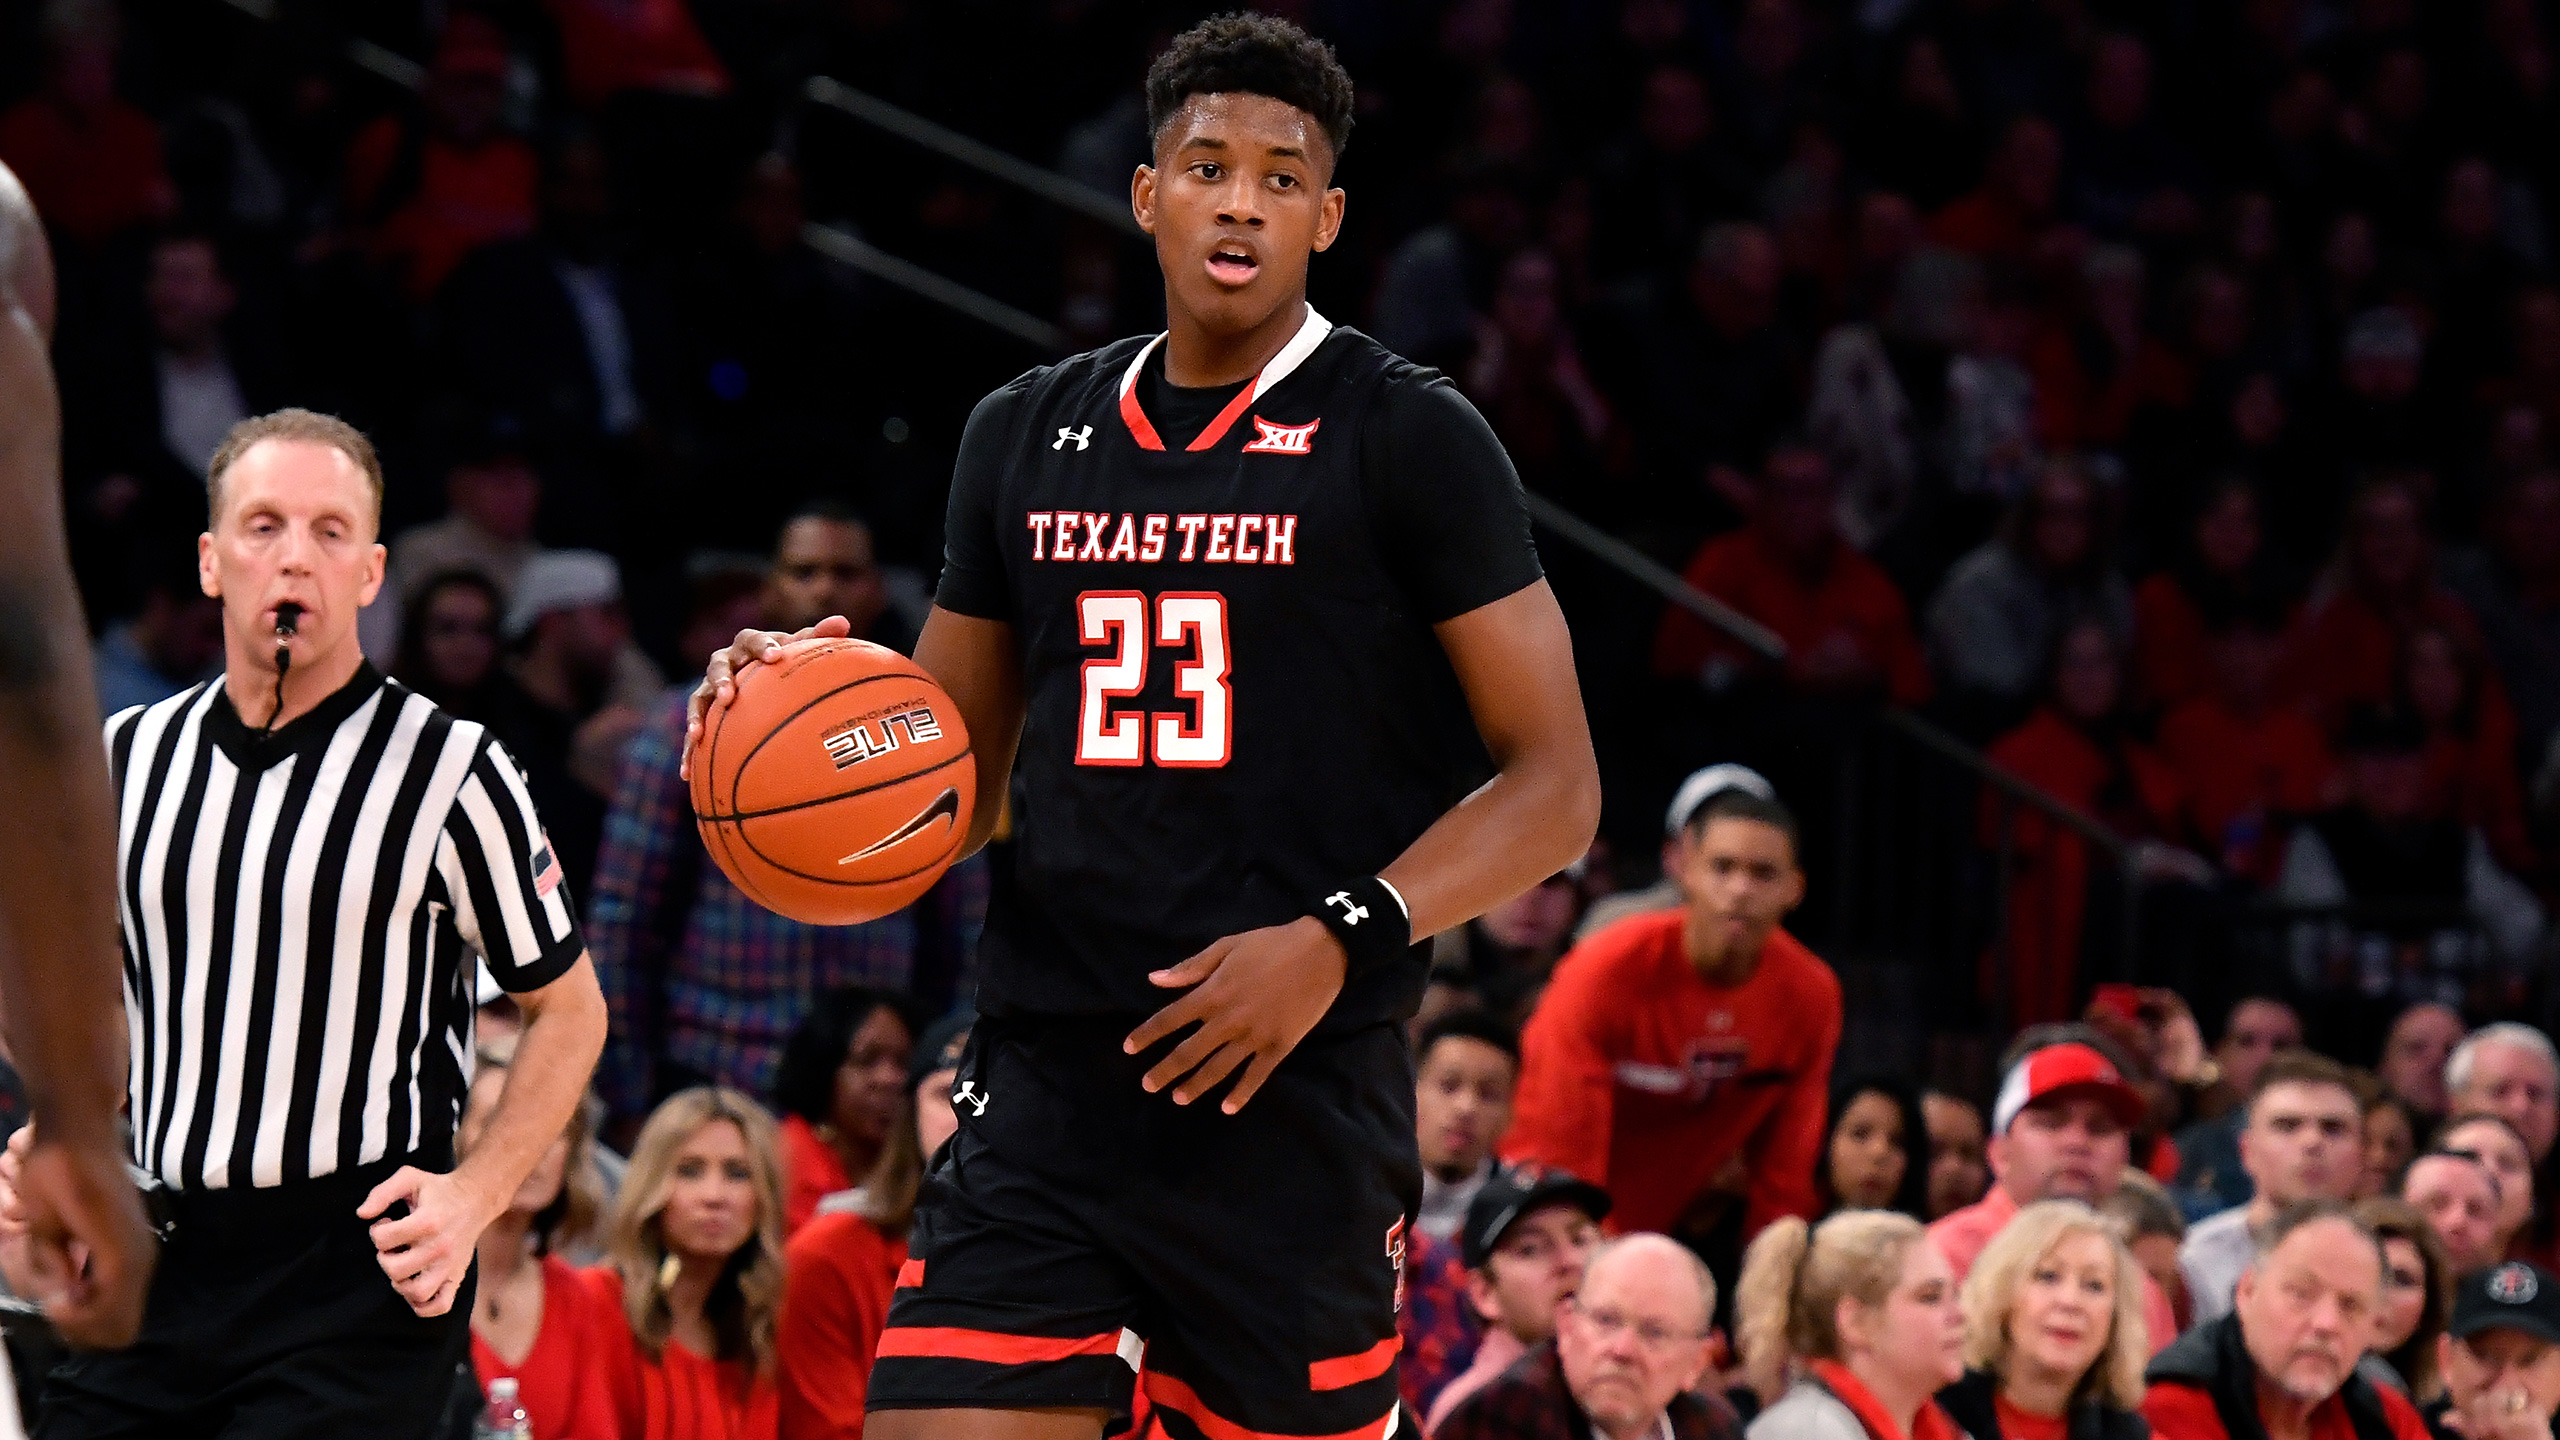 #8 Texas Tech vs. Baylor (M Basketball)